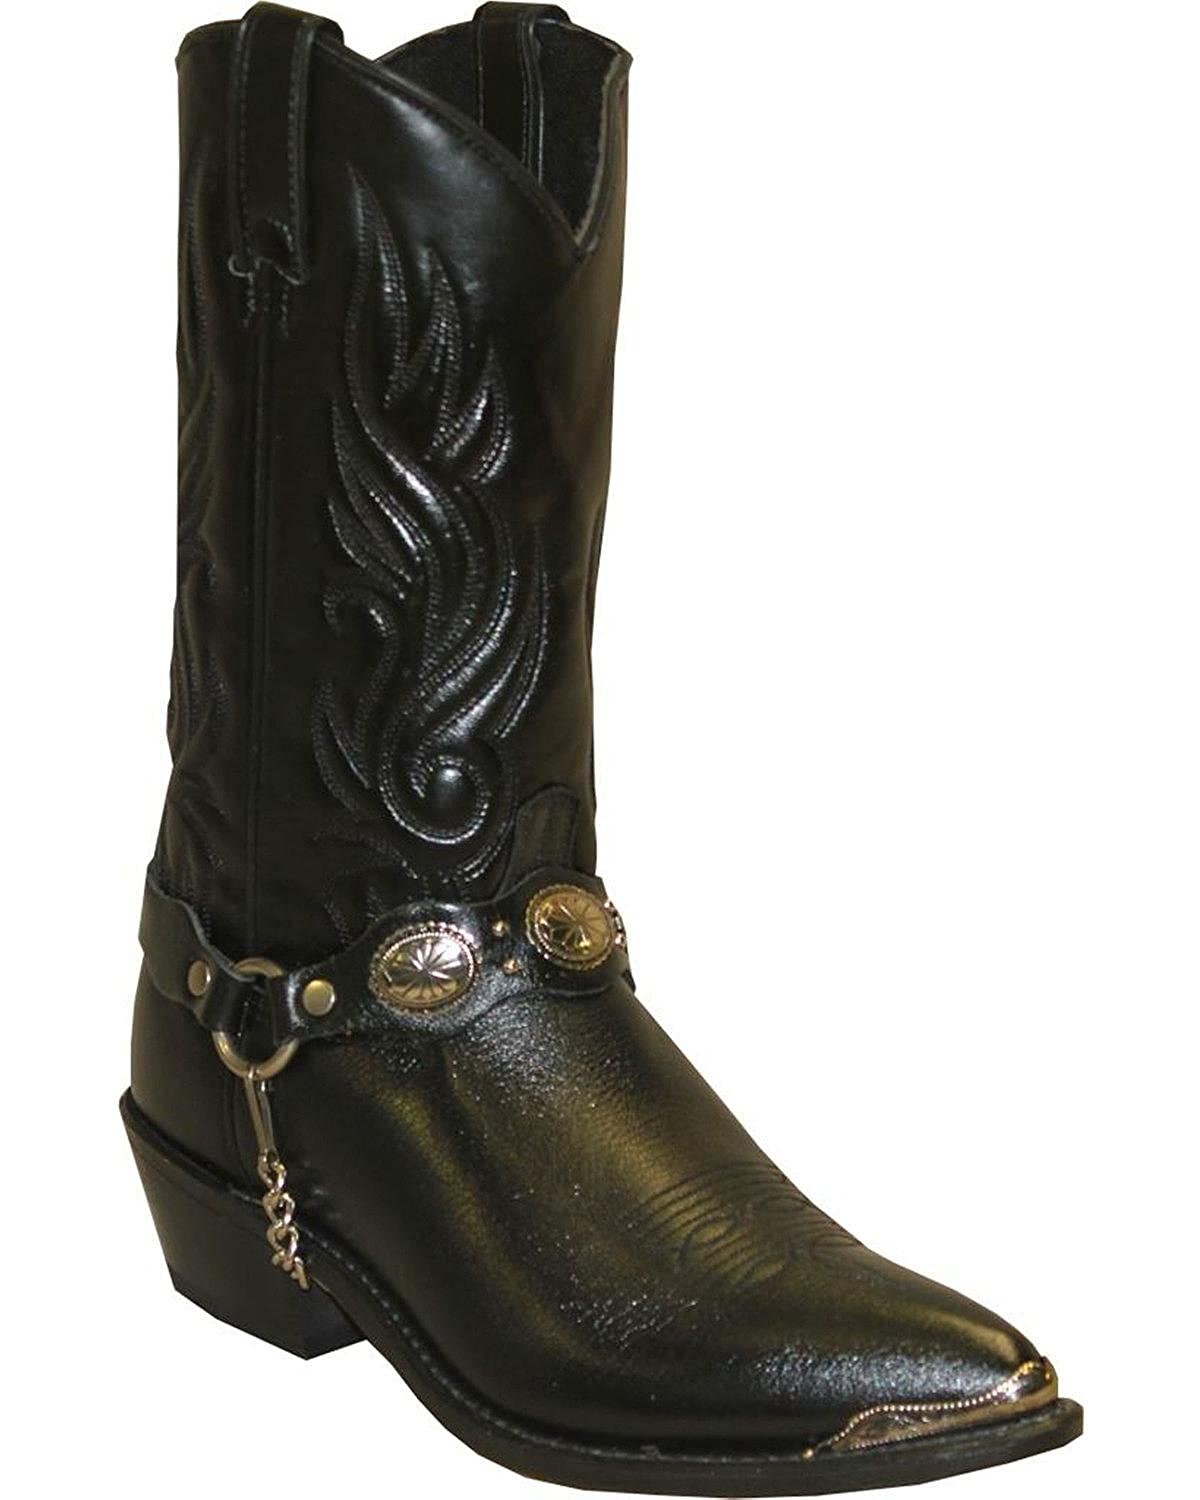 562252b40e8 Abilene Men's Sage by with Concho Strap Western Boot